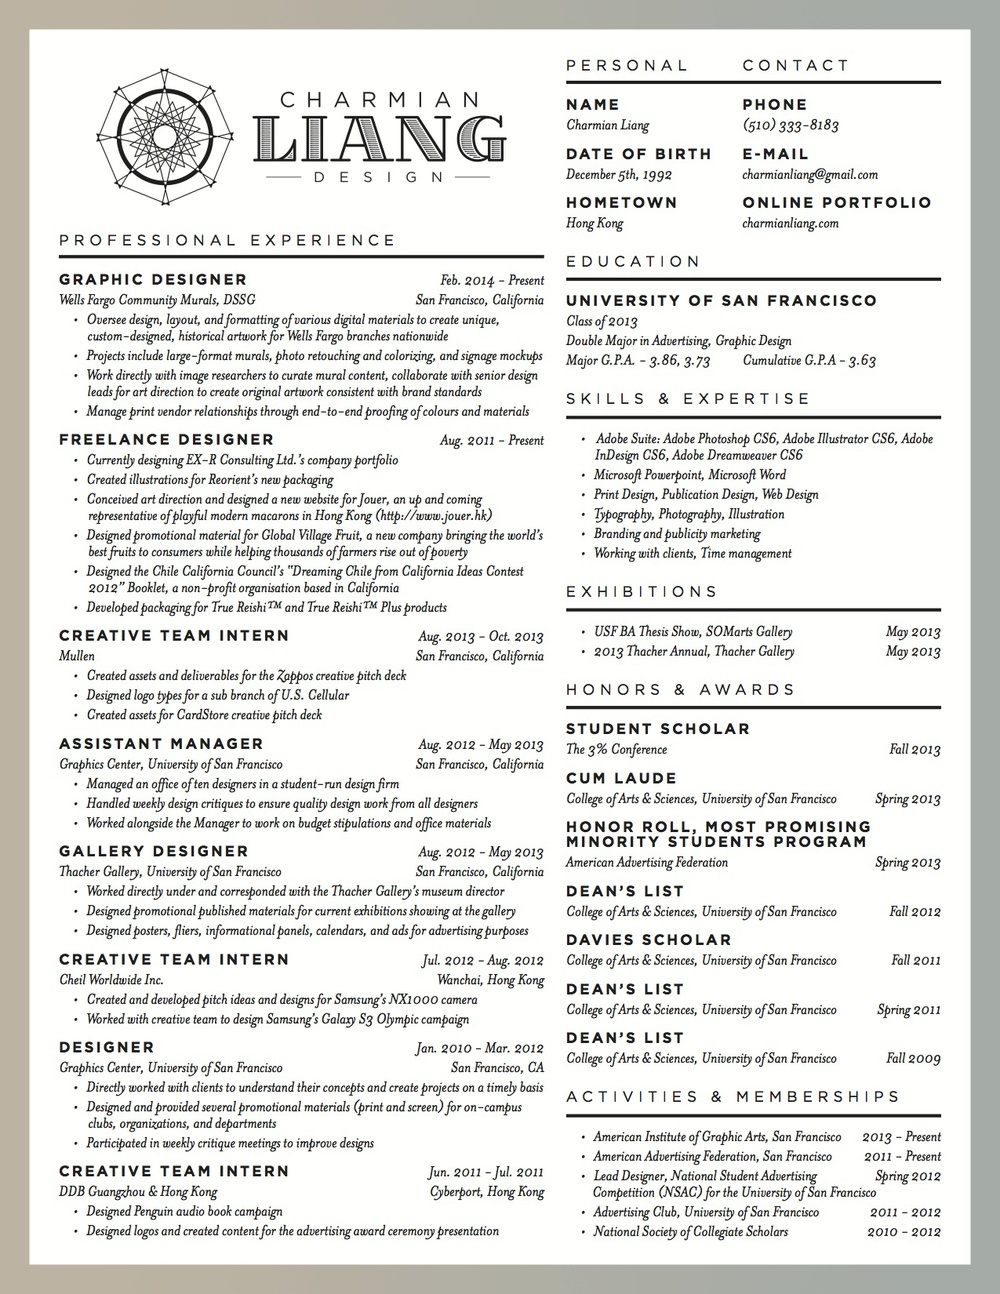 CharmianLiang-Resume